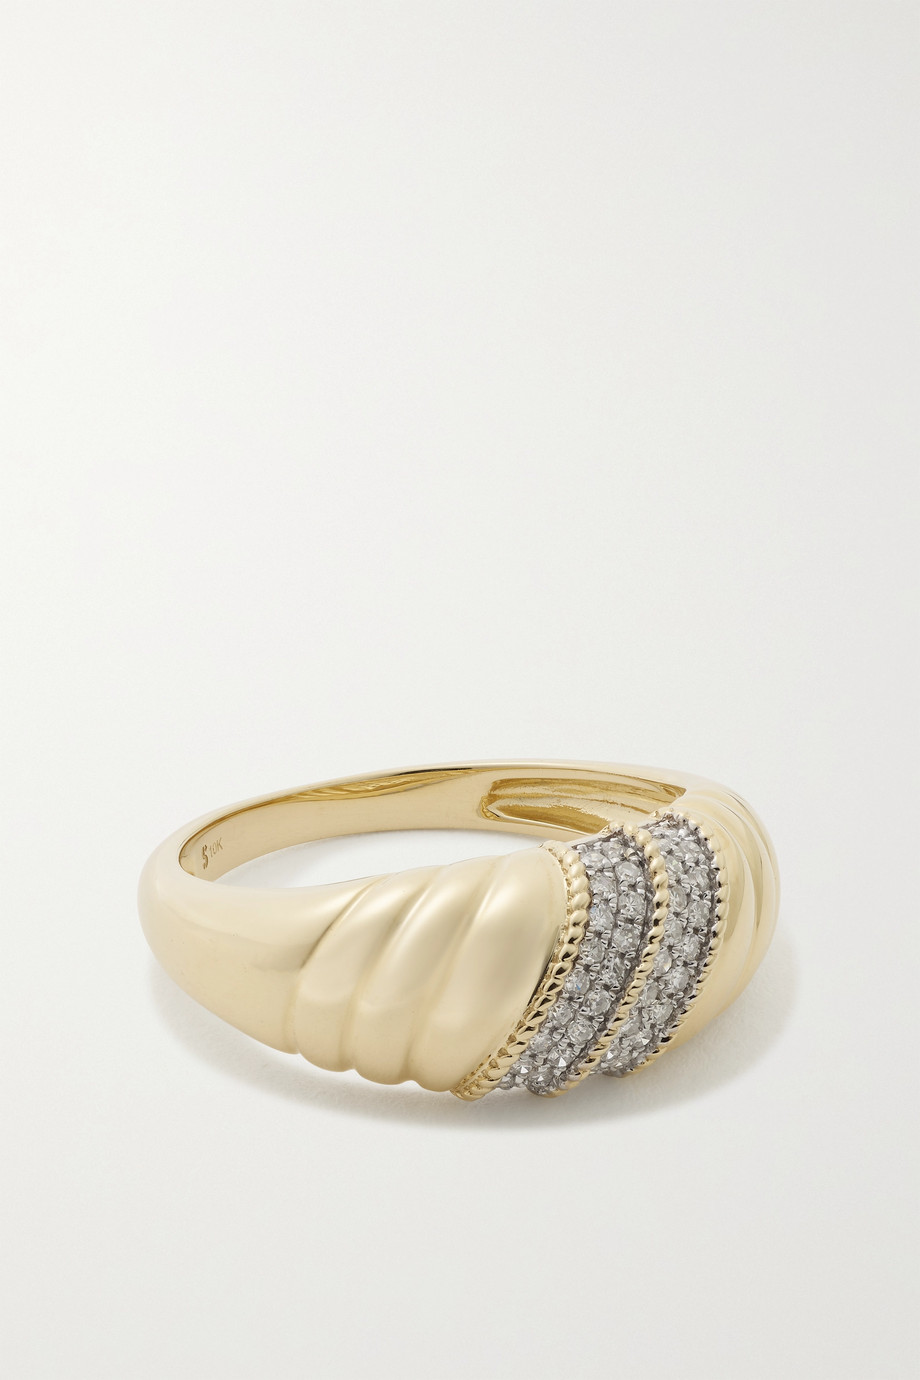 STONE AND STRAND Le Grande Cupola 10-karat gold diamond ring